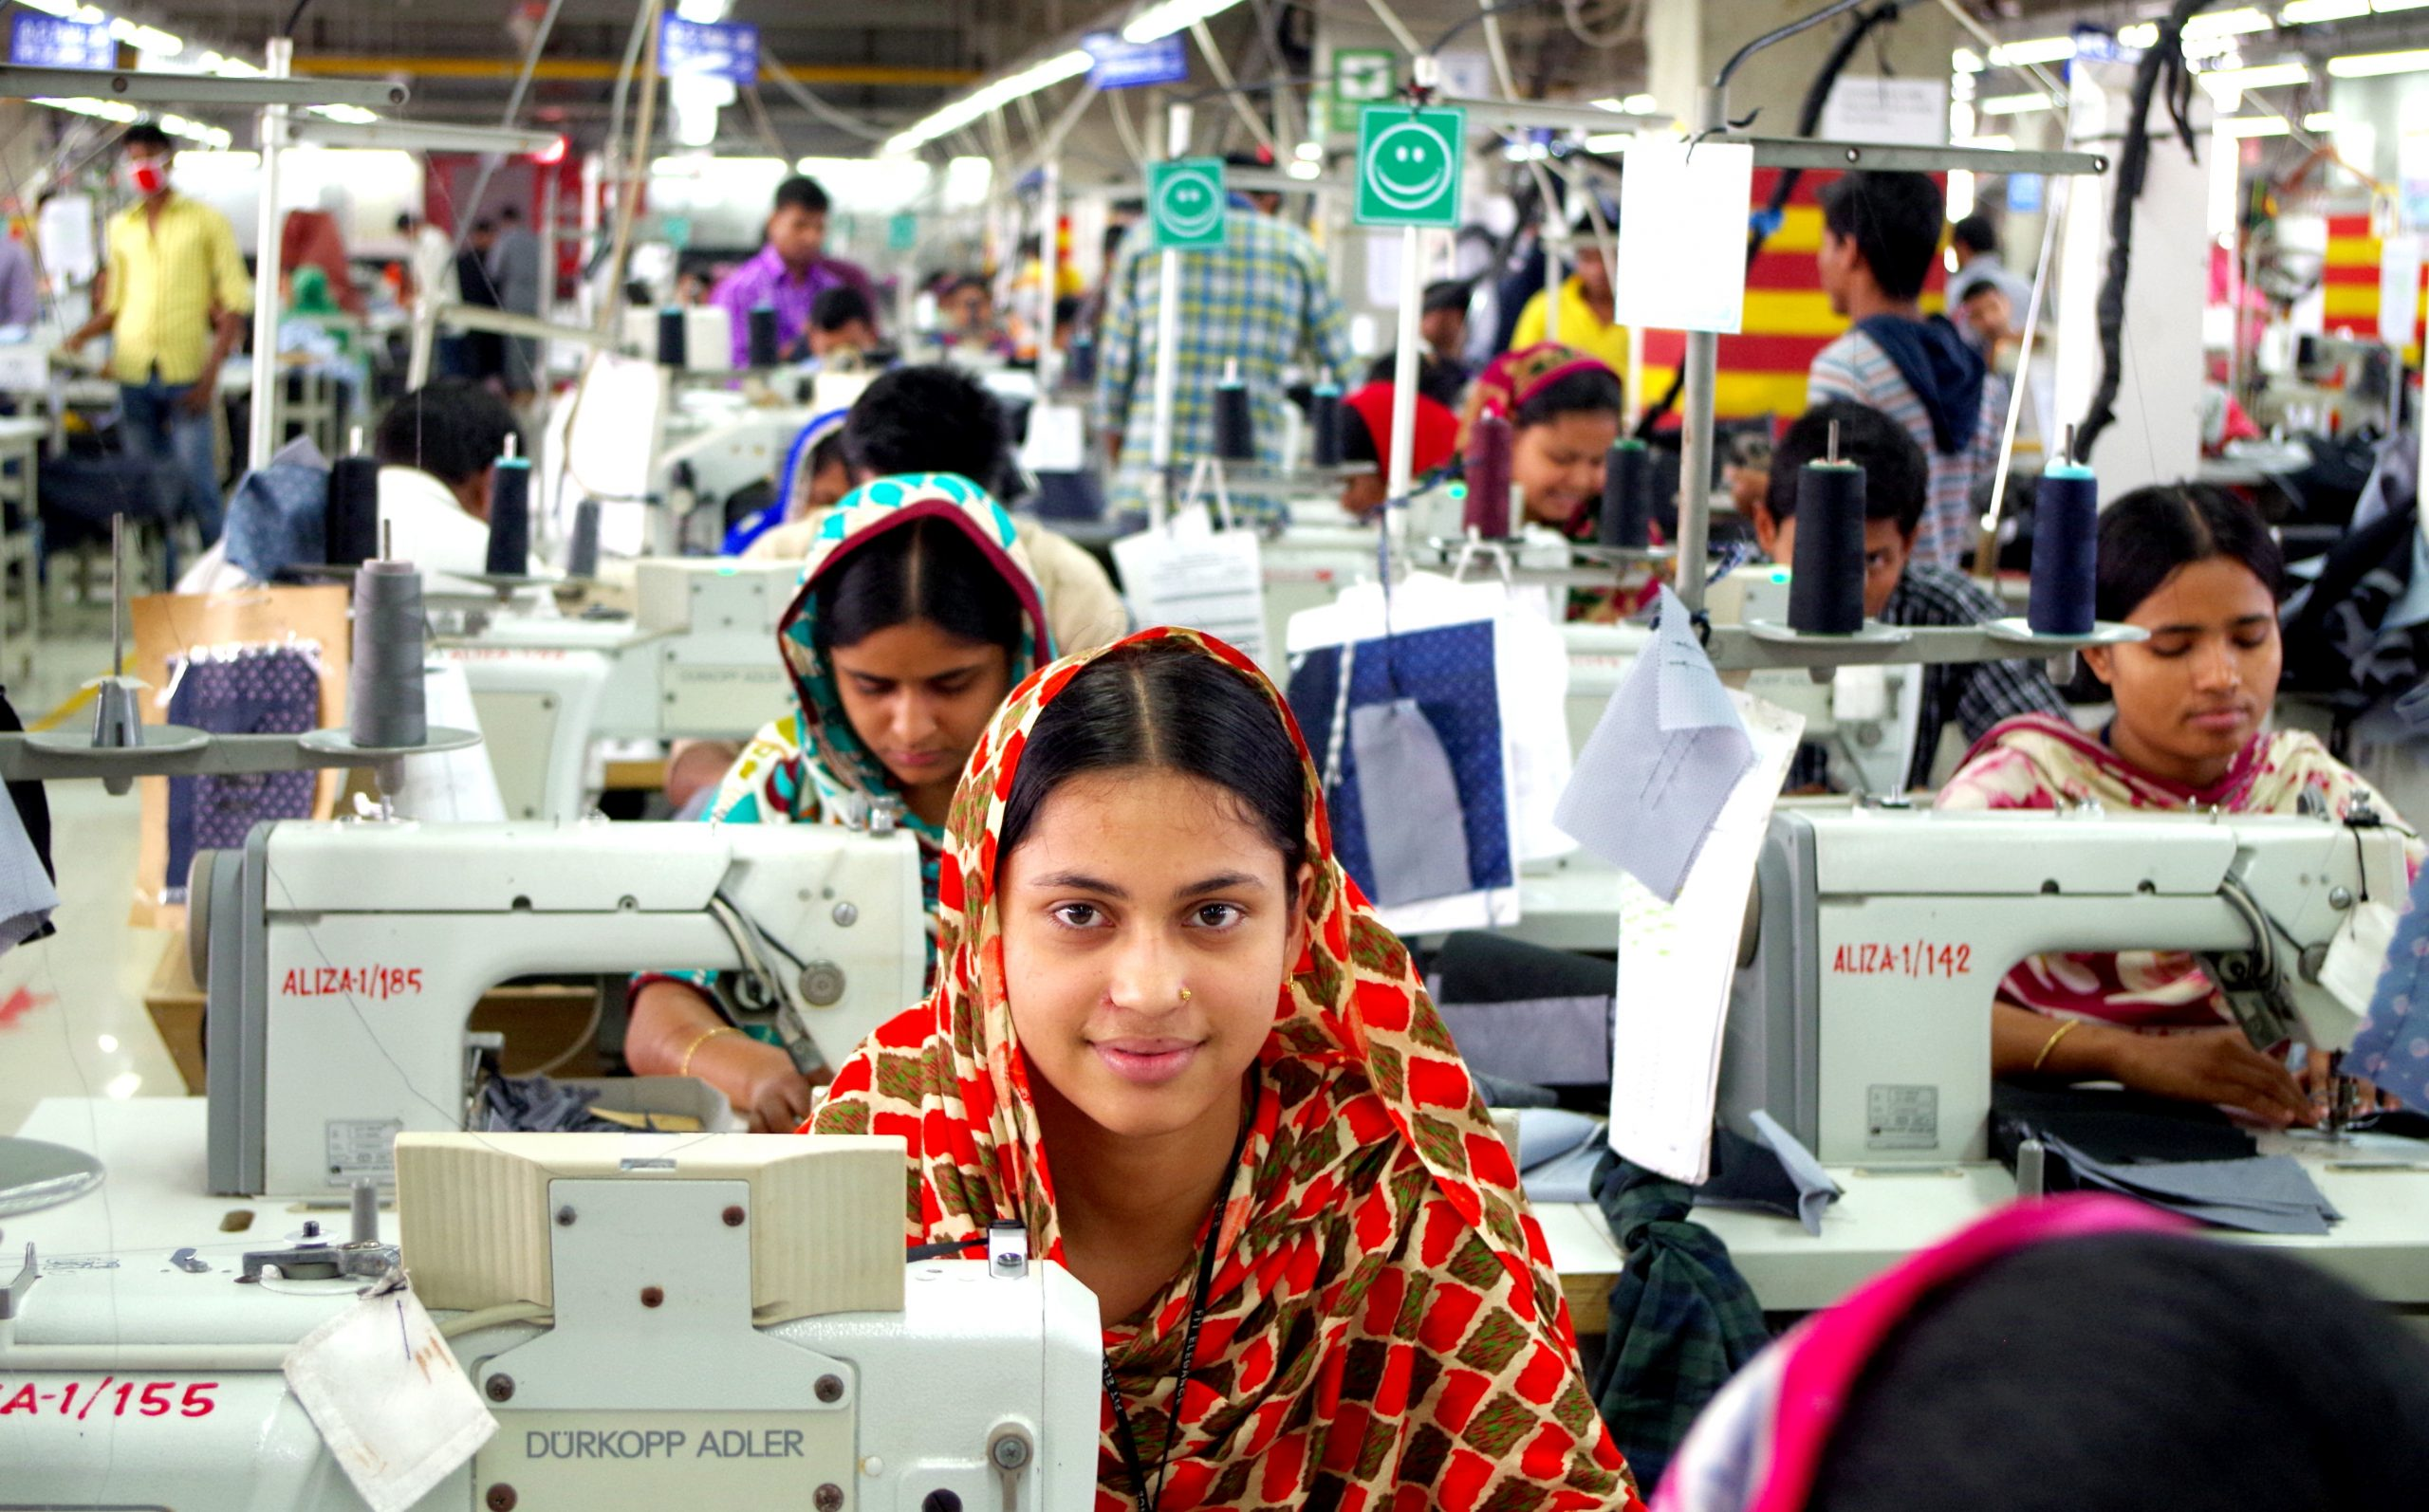 Garment workers in a COVID-19 world: Re-inventing a broken system